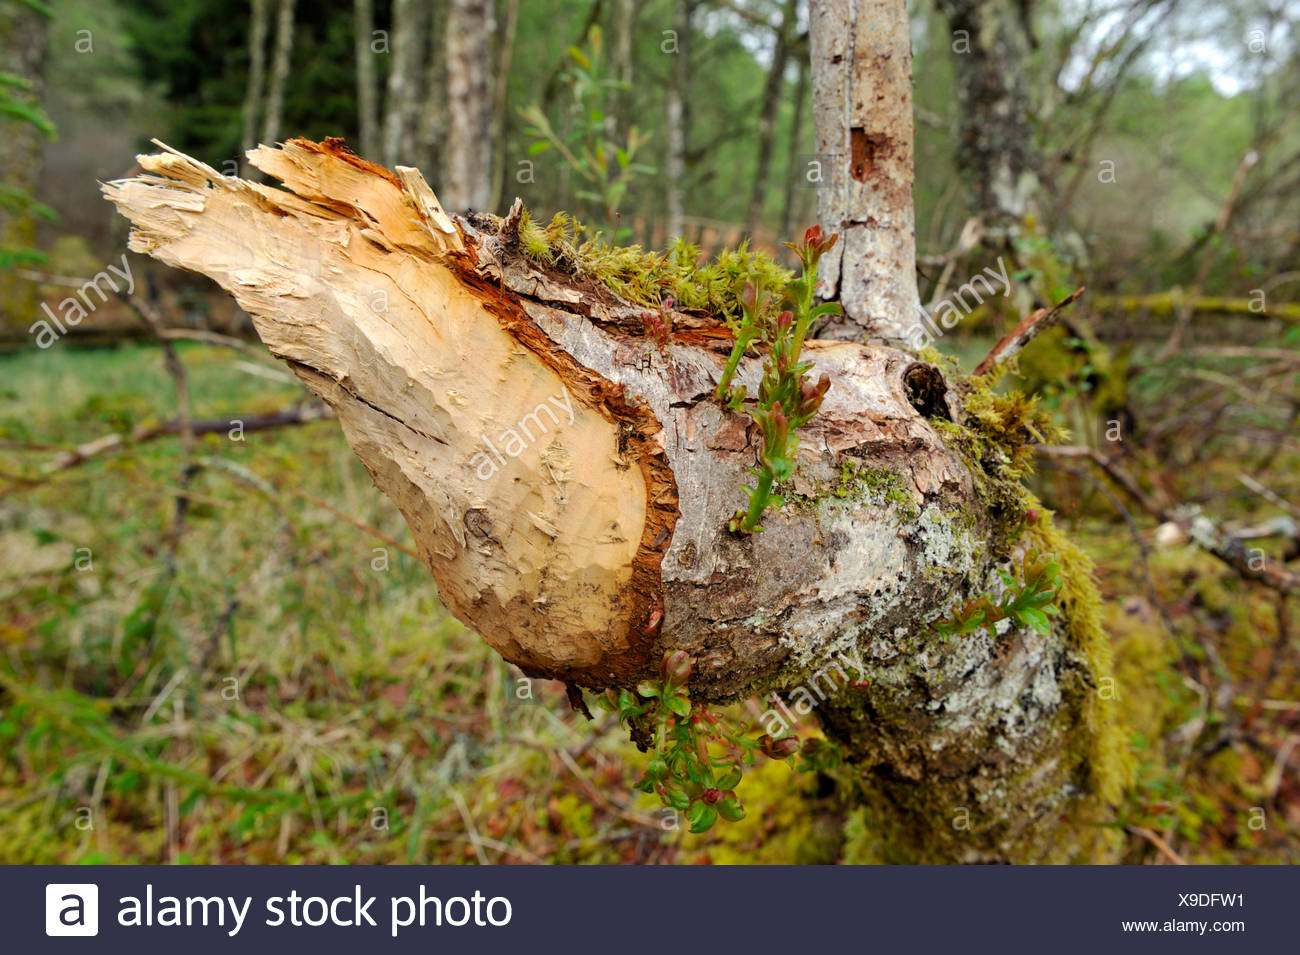 European Beaver - Castor fiber - tree damage - Stock Image